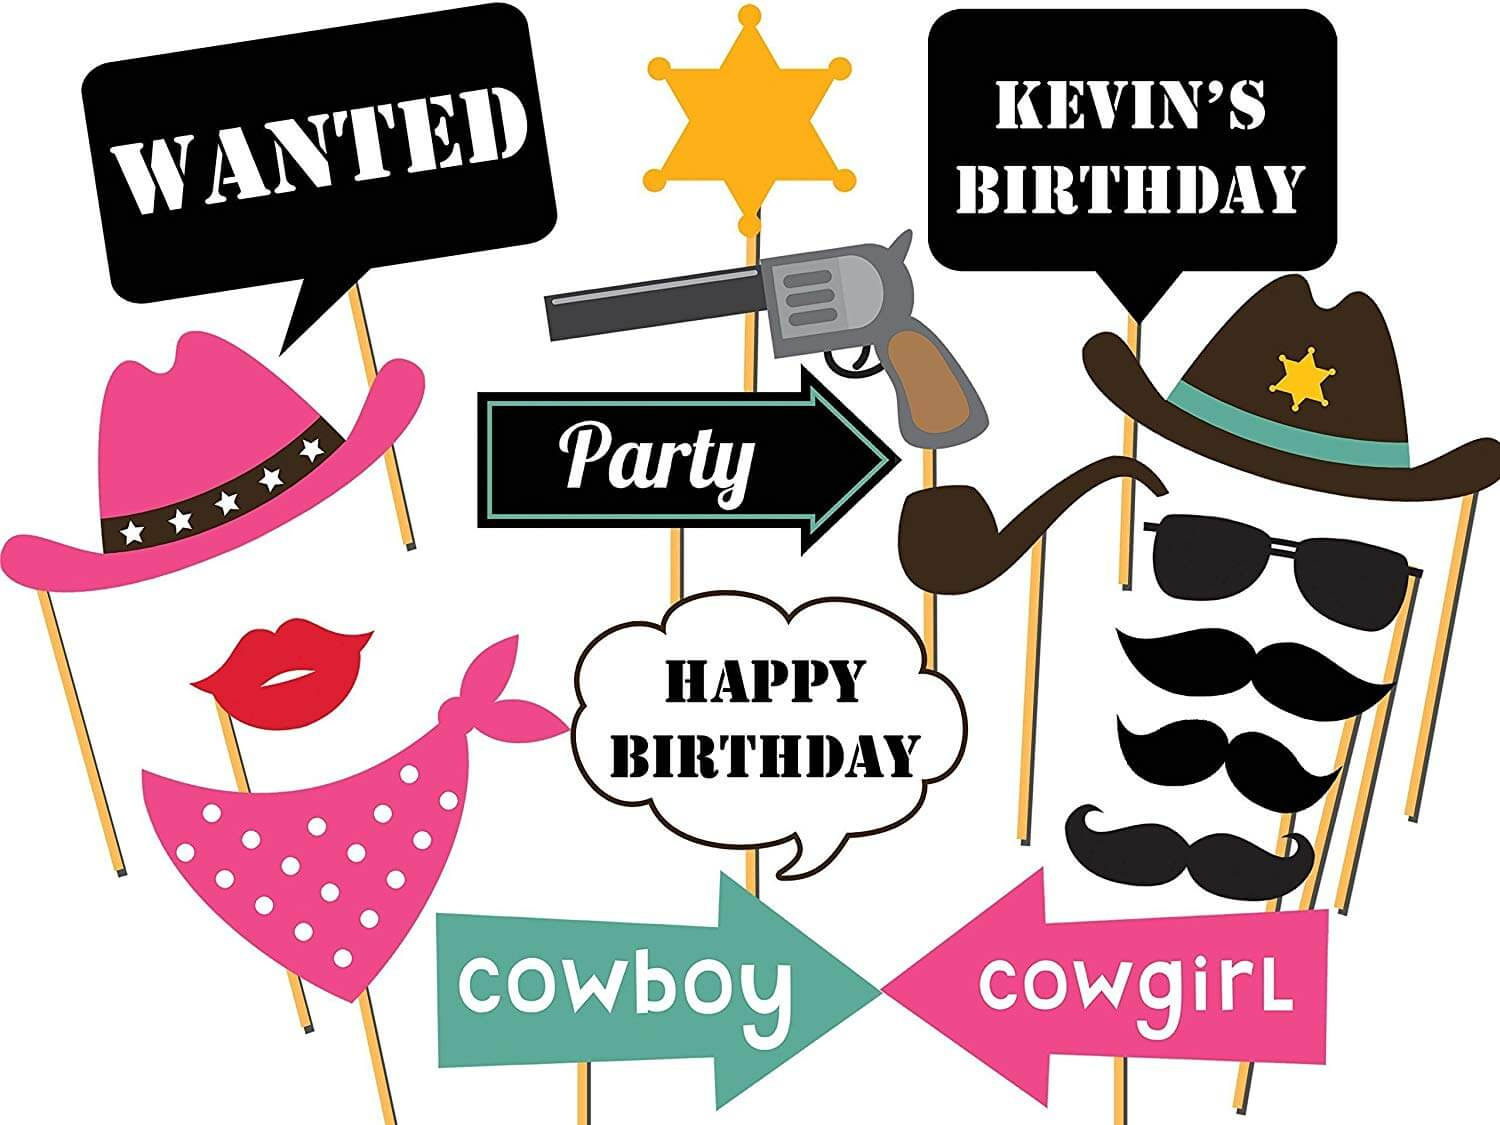 Cowboy Photo Booth Props Western Party Decorations Cowgirl Cowboy Photo  booth Props Wanted Decor Photo Props Wild West Photobotoh Prop Party Supply.